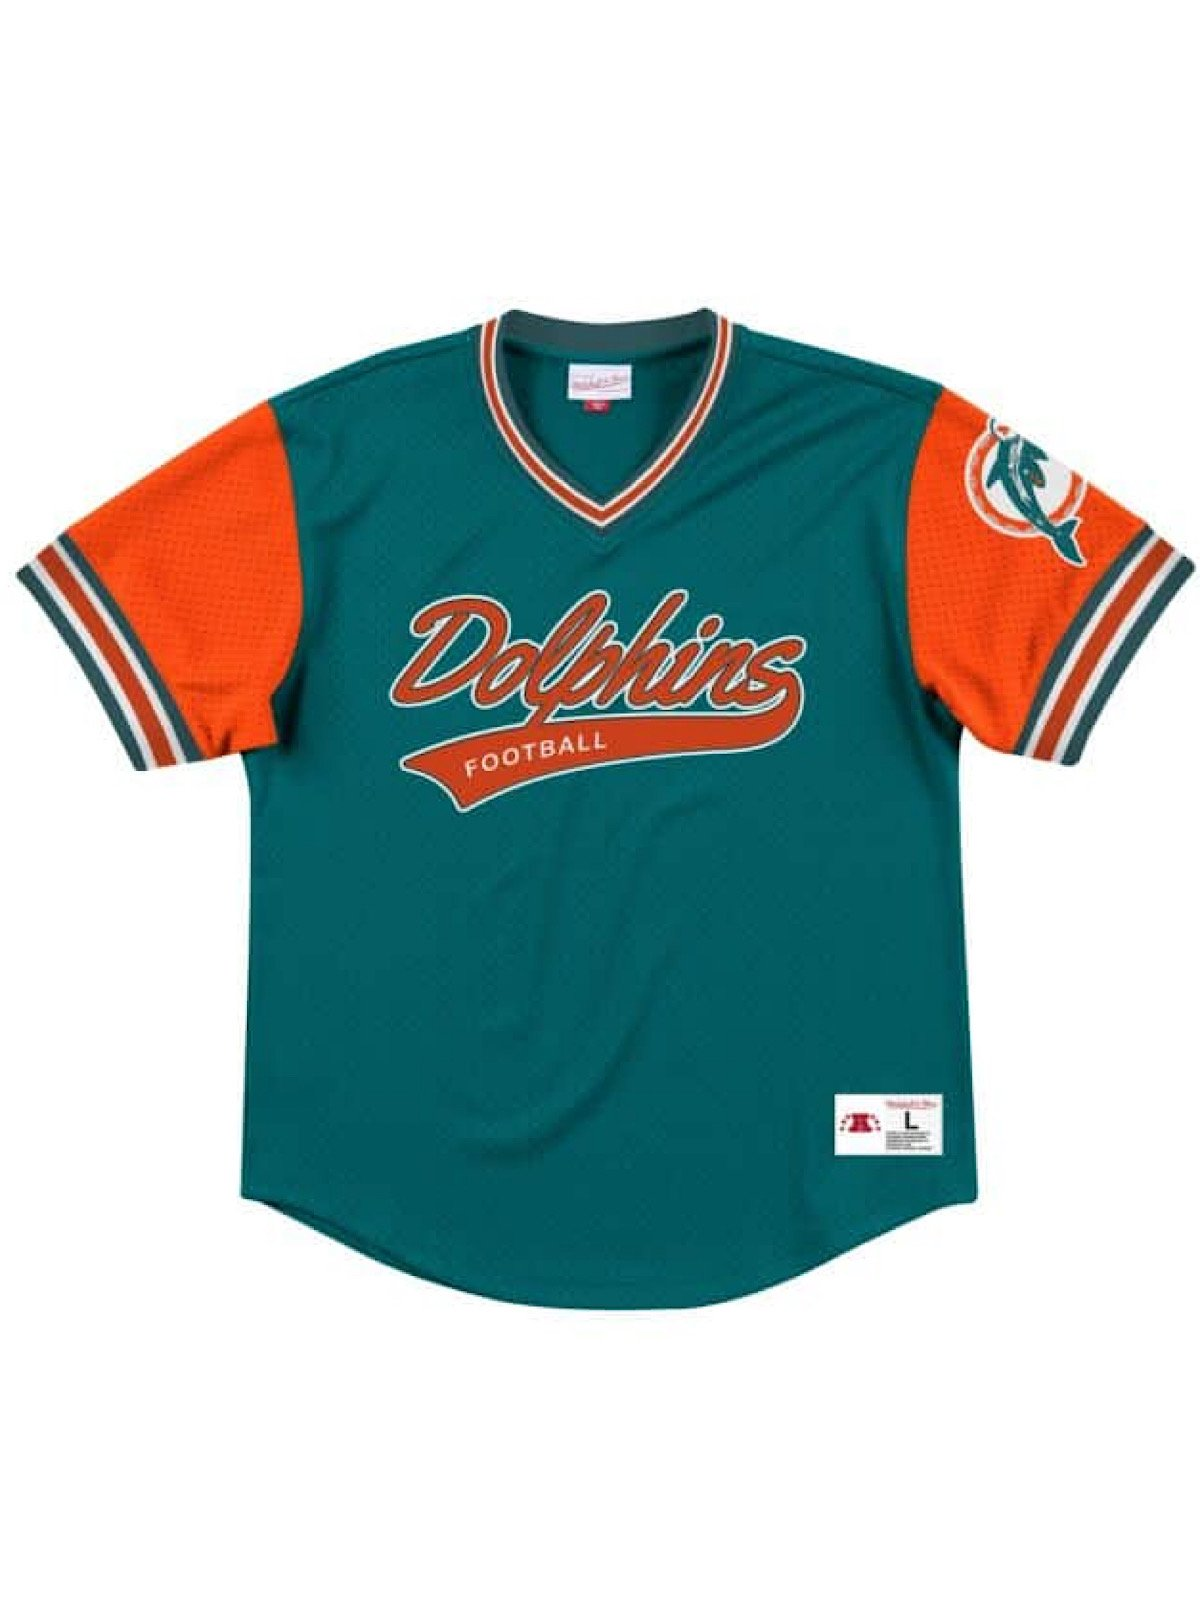 Mitchell & Ness Jersey - Dolphins - Top Prospect - Teal